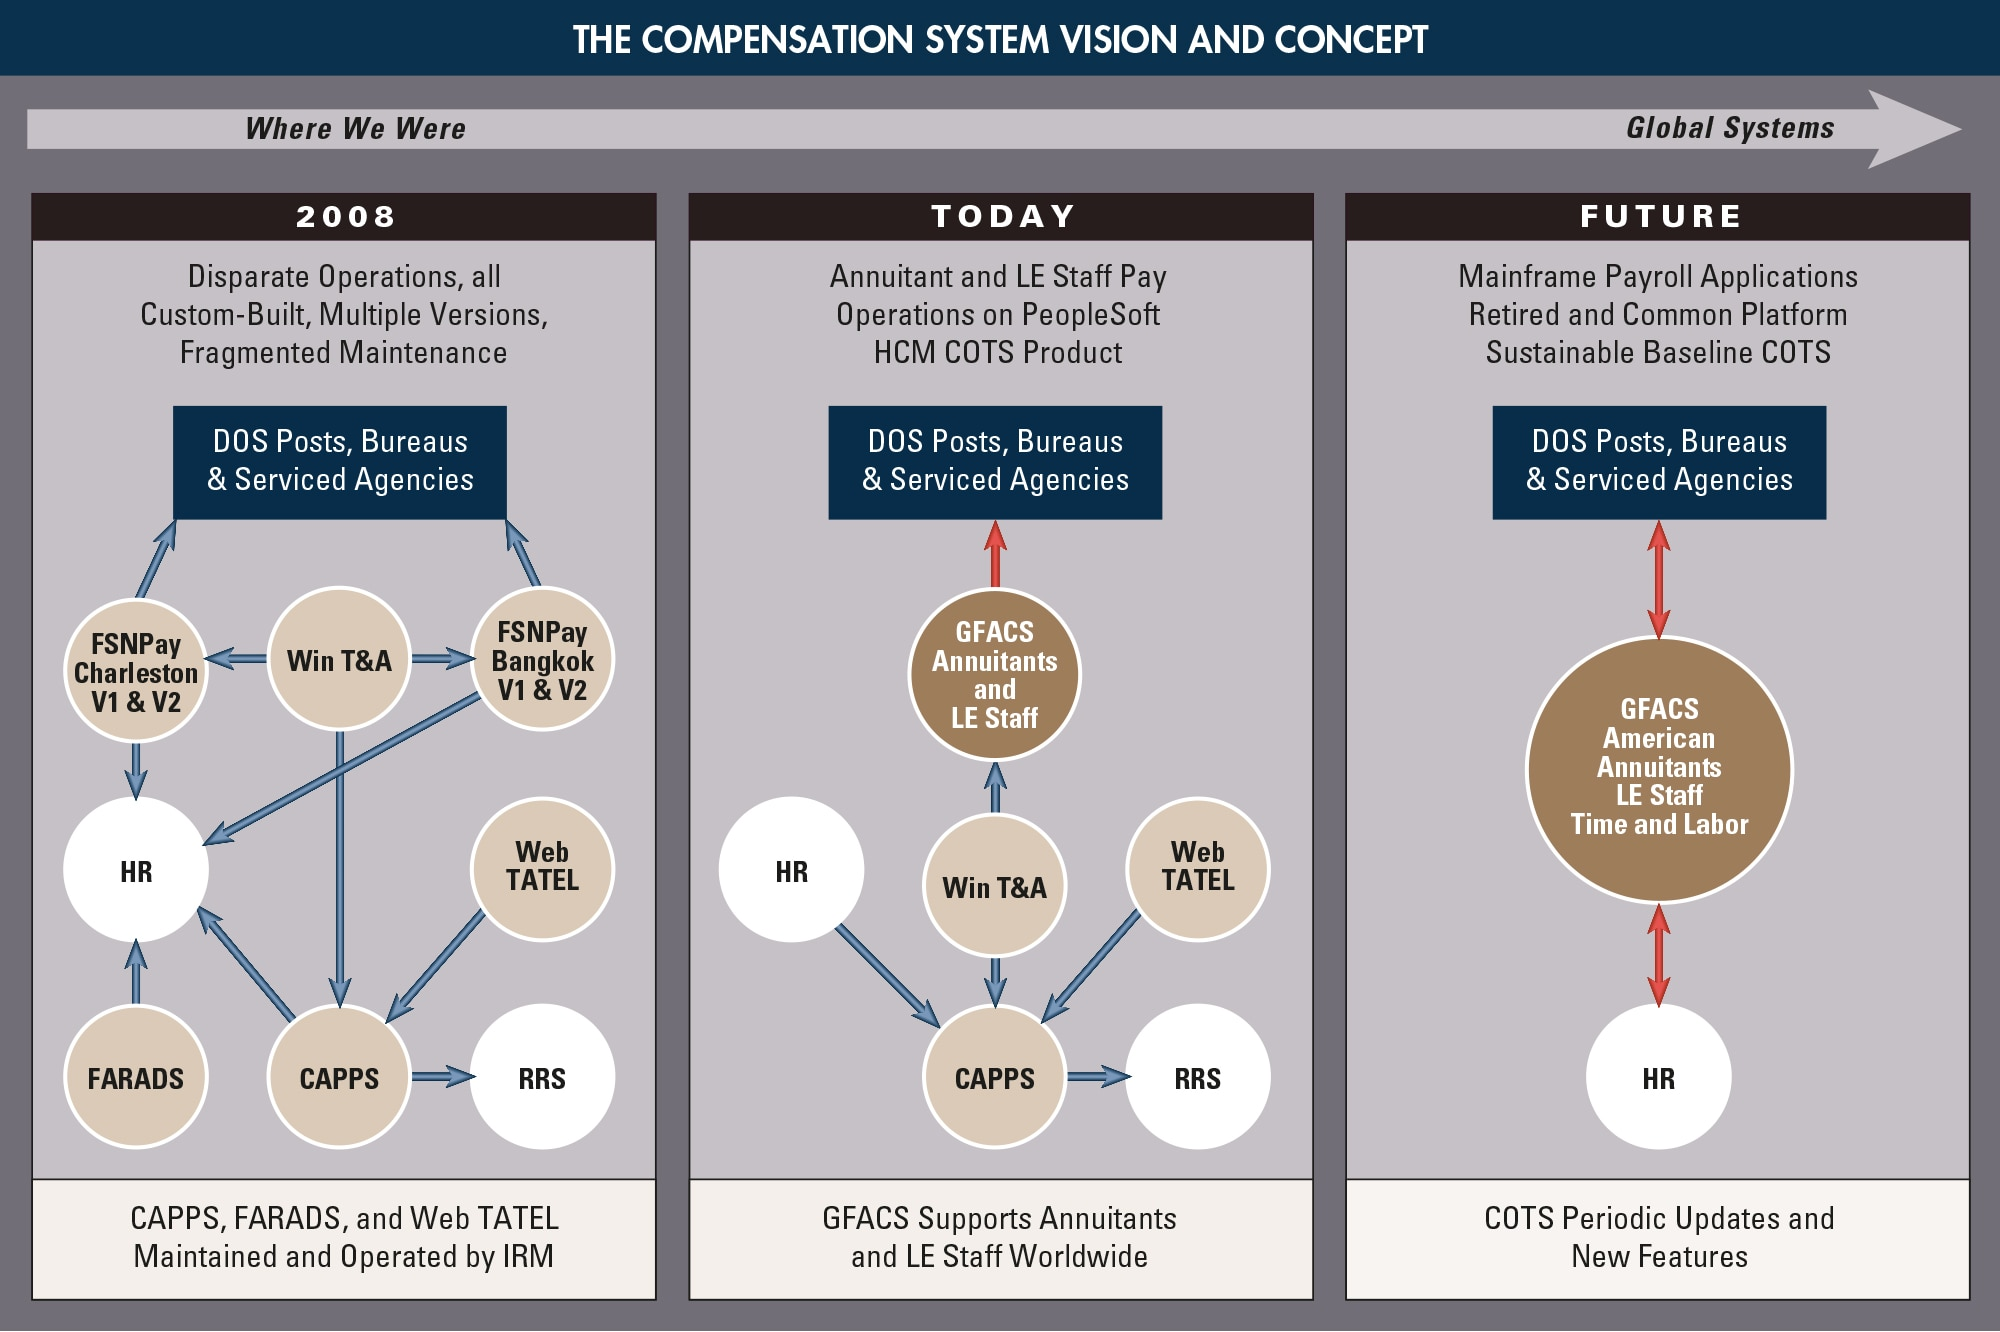 Diagram depicting the Compensation System vision and concept.